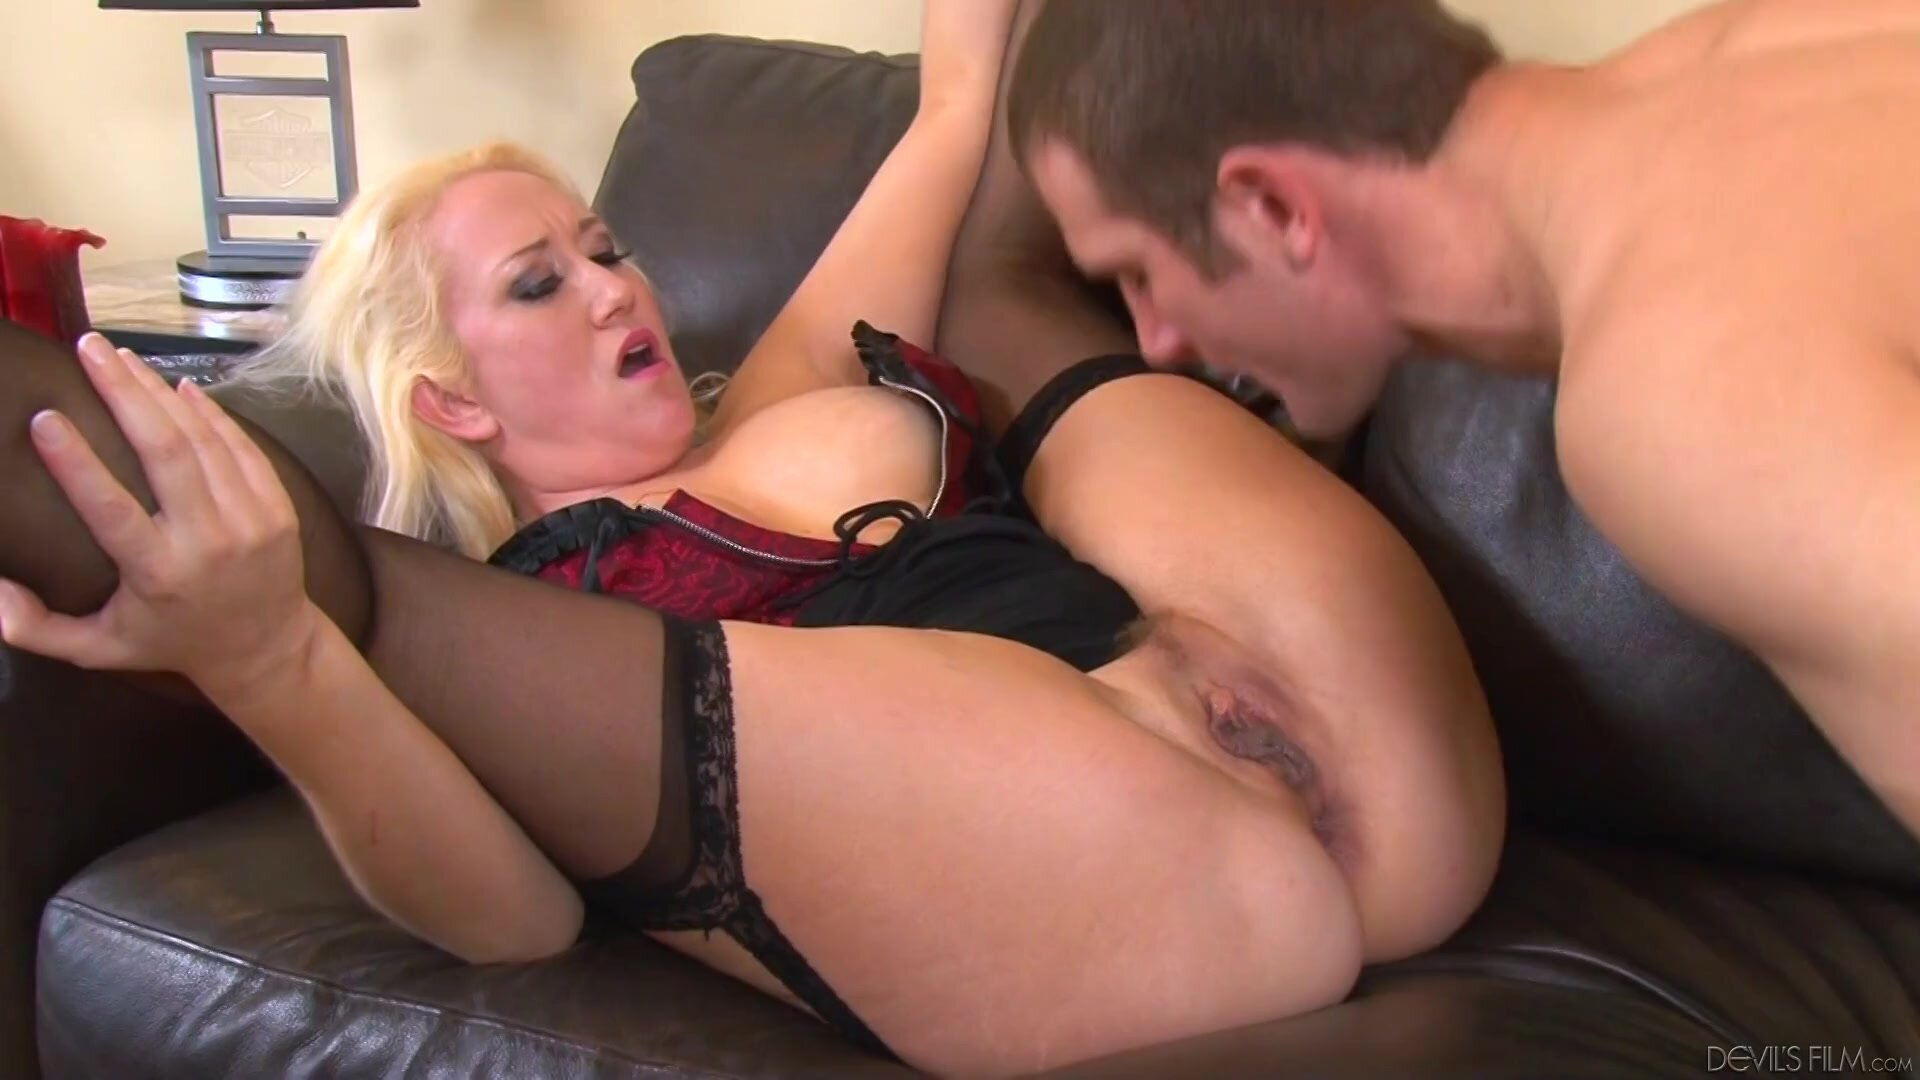 Ass Fucked Mommy In Action - Alana Evans